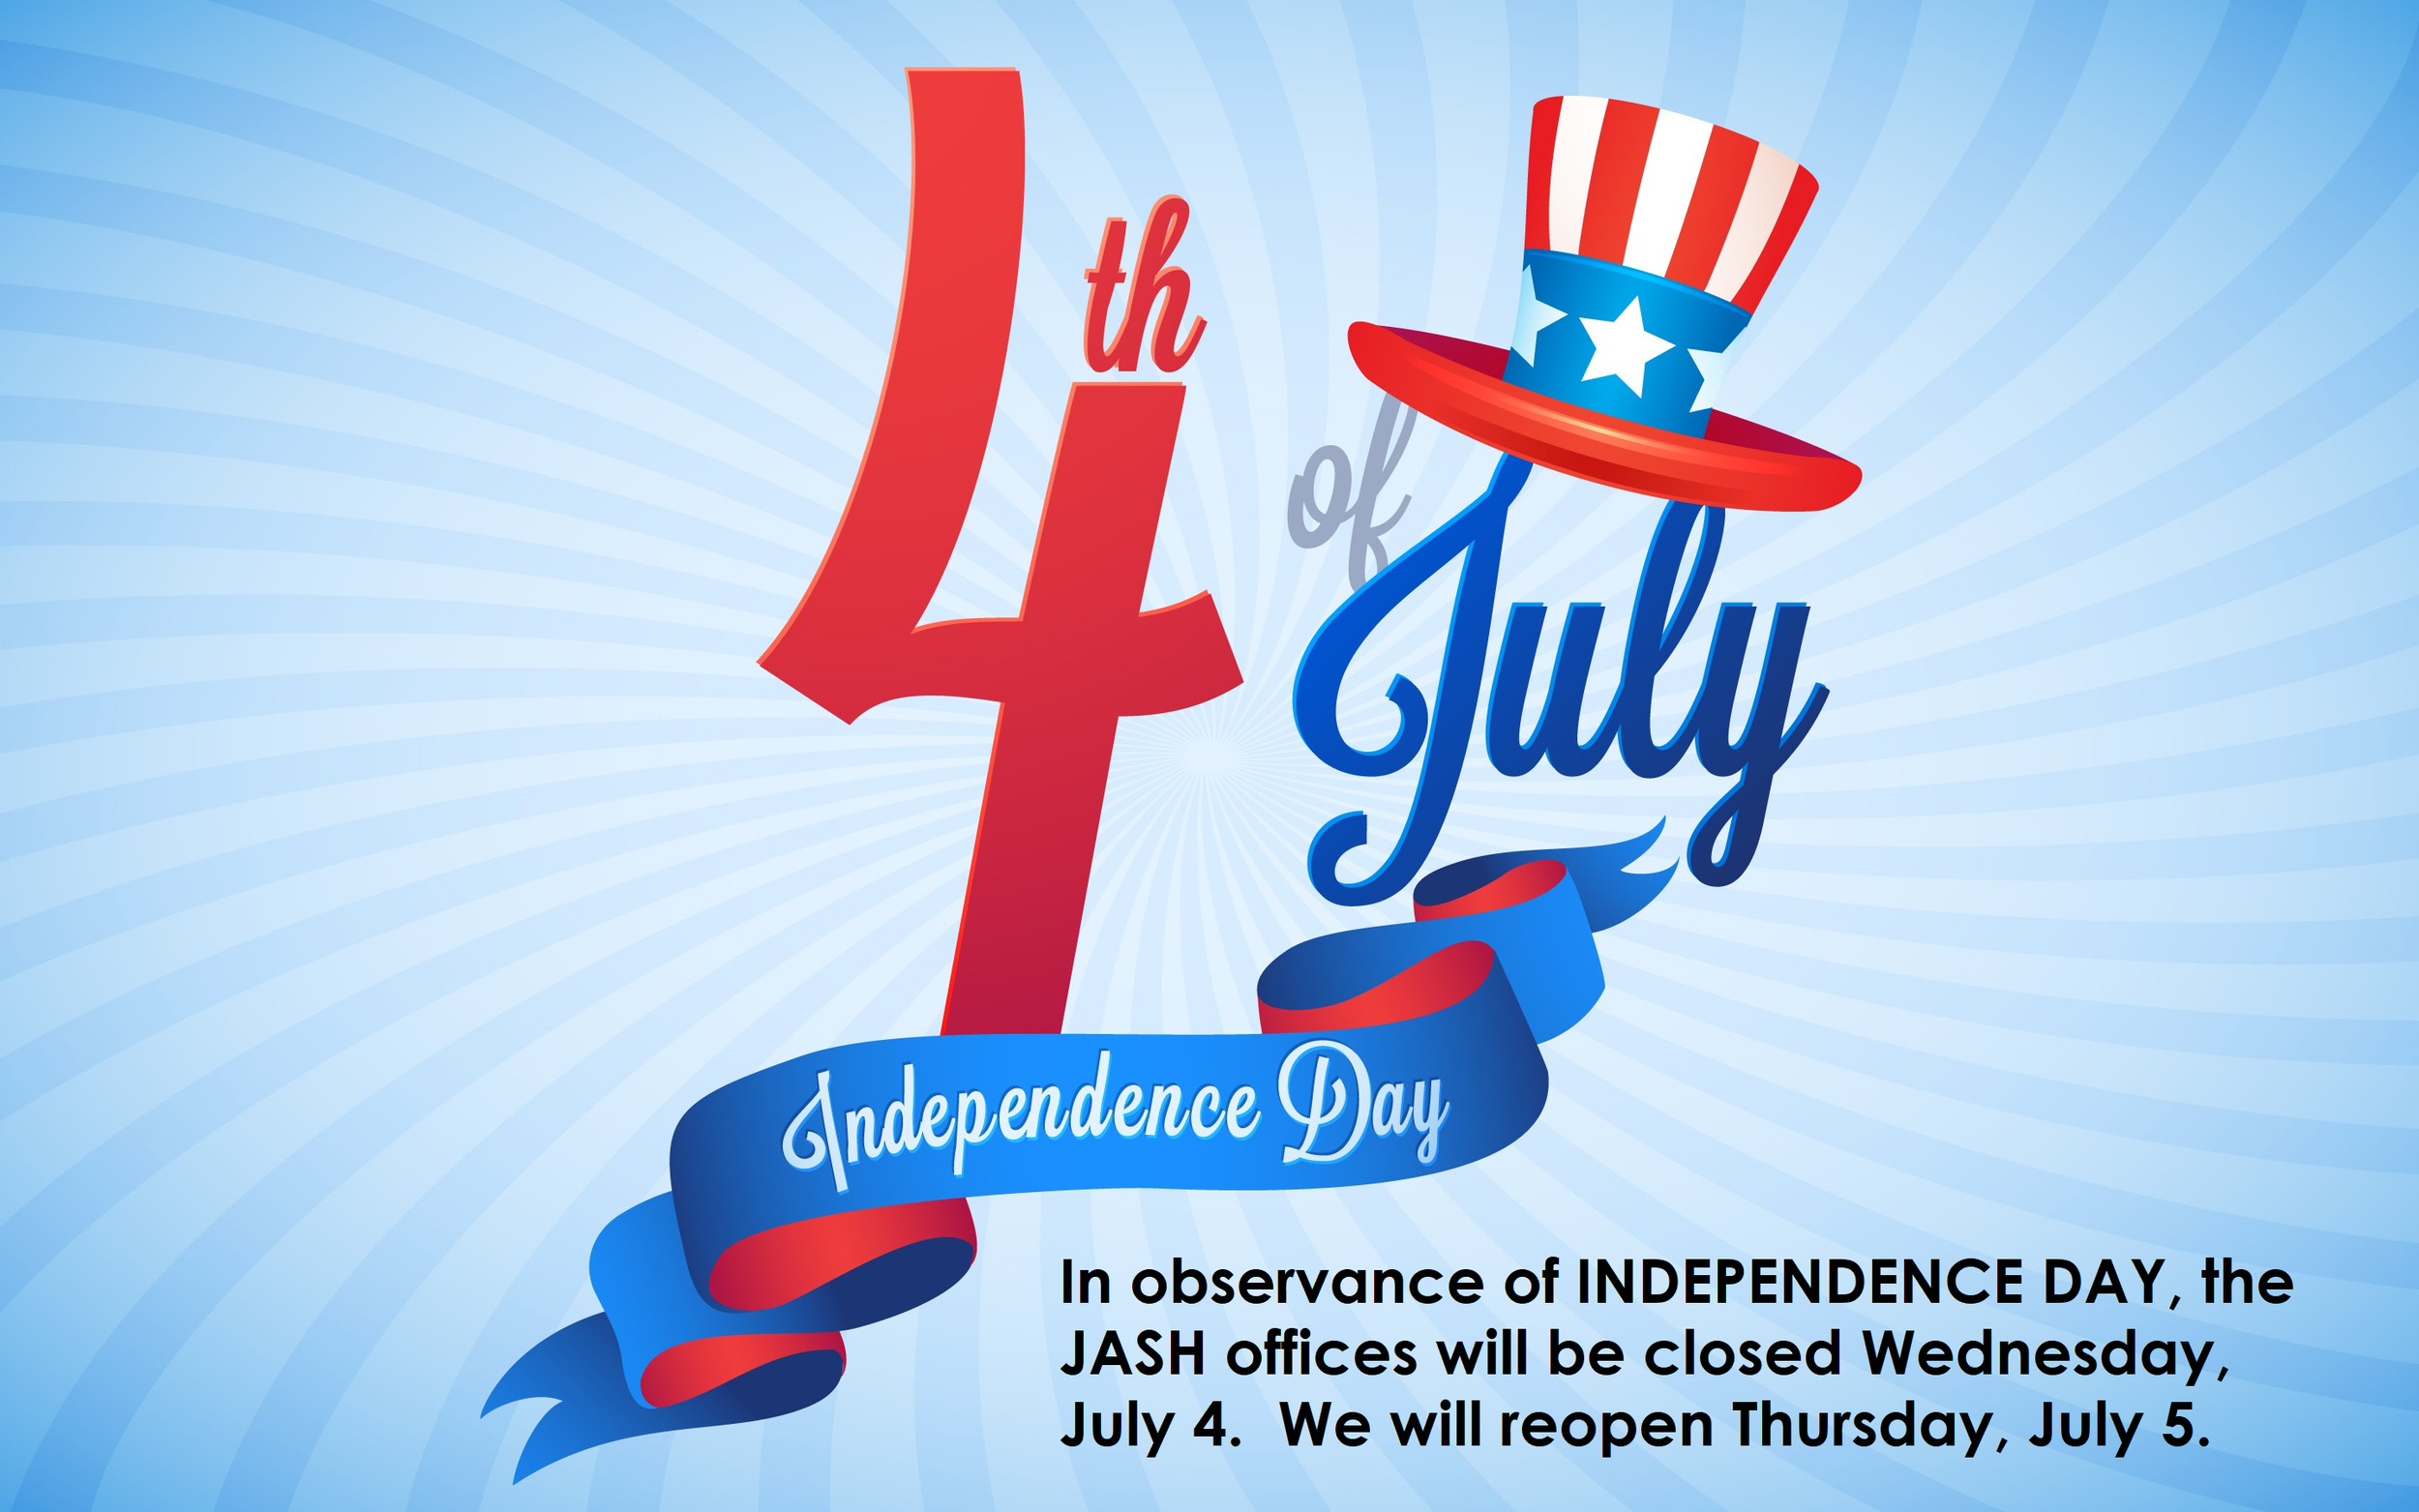 Independence-Day-4th-Of-July WITH MESSAGE.png